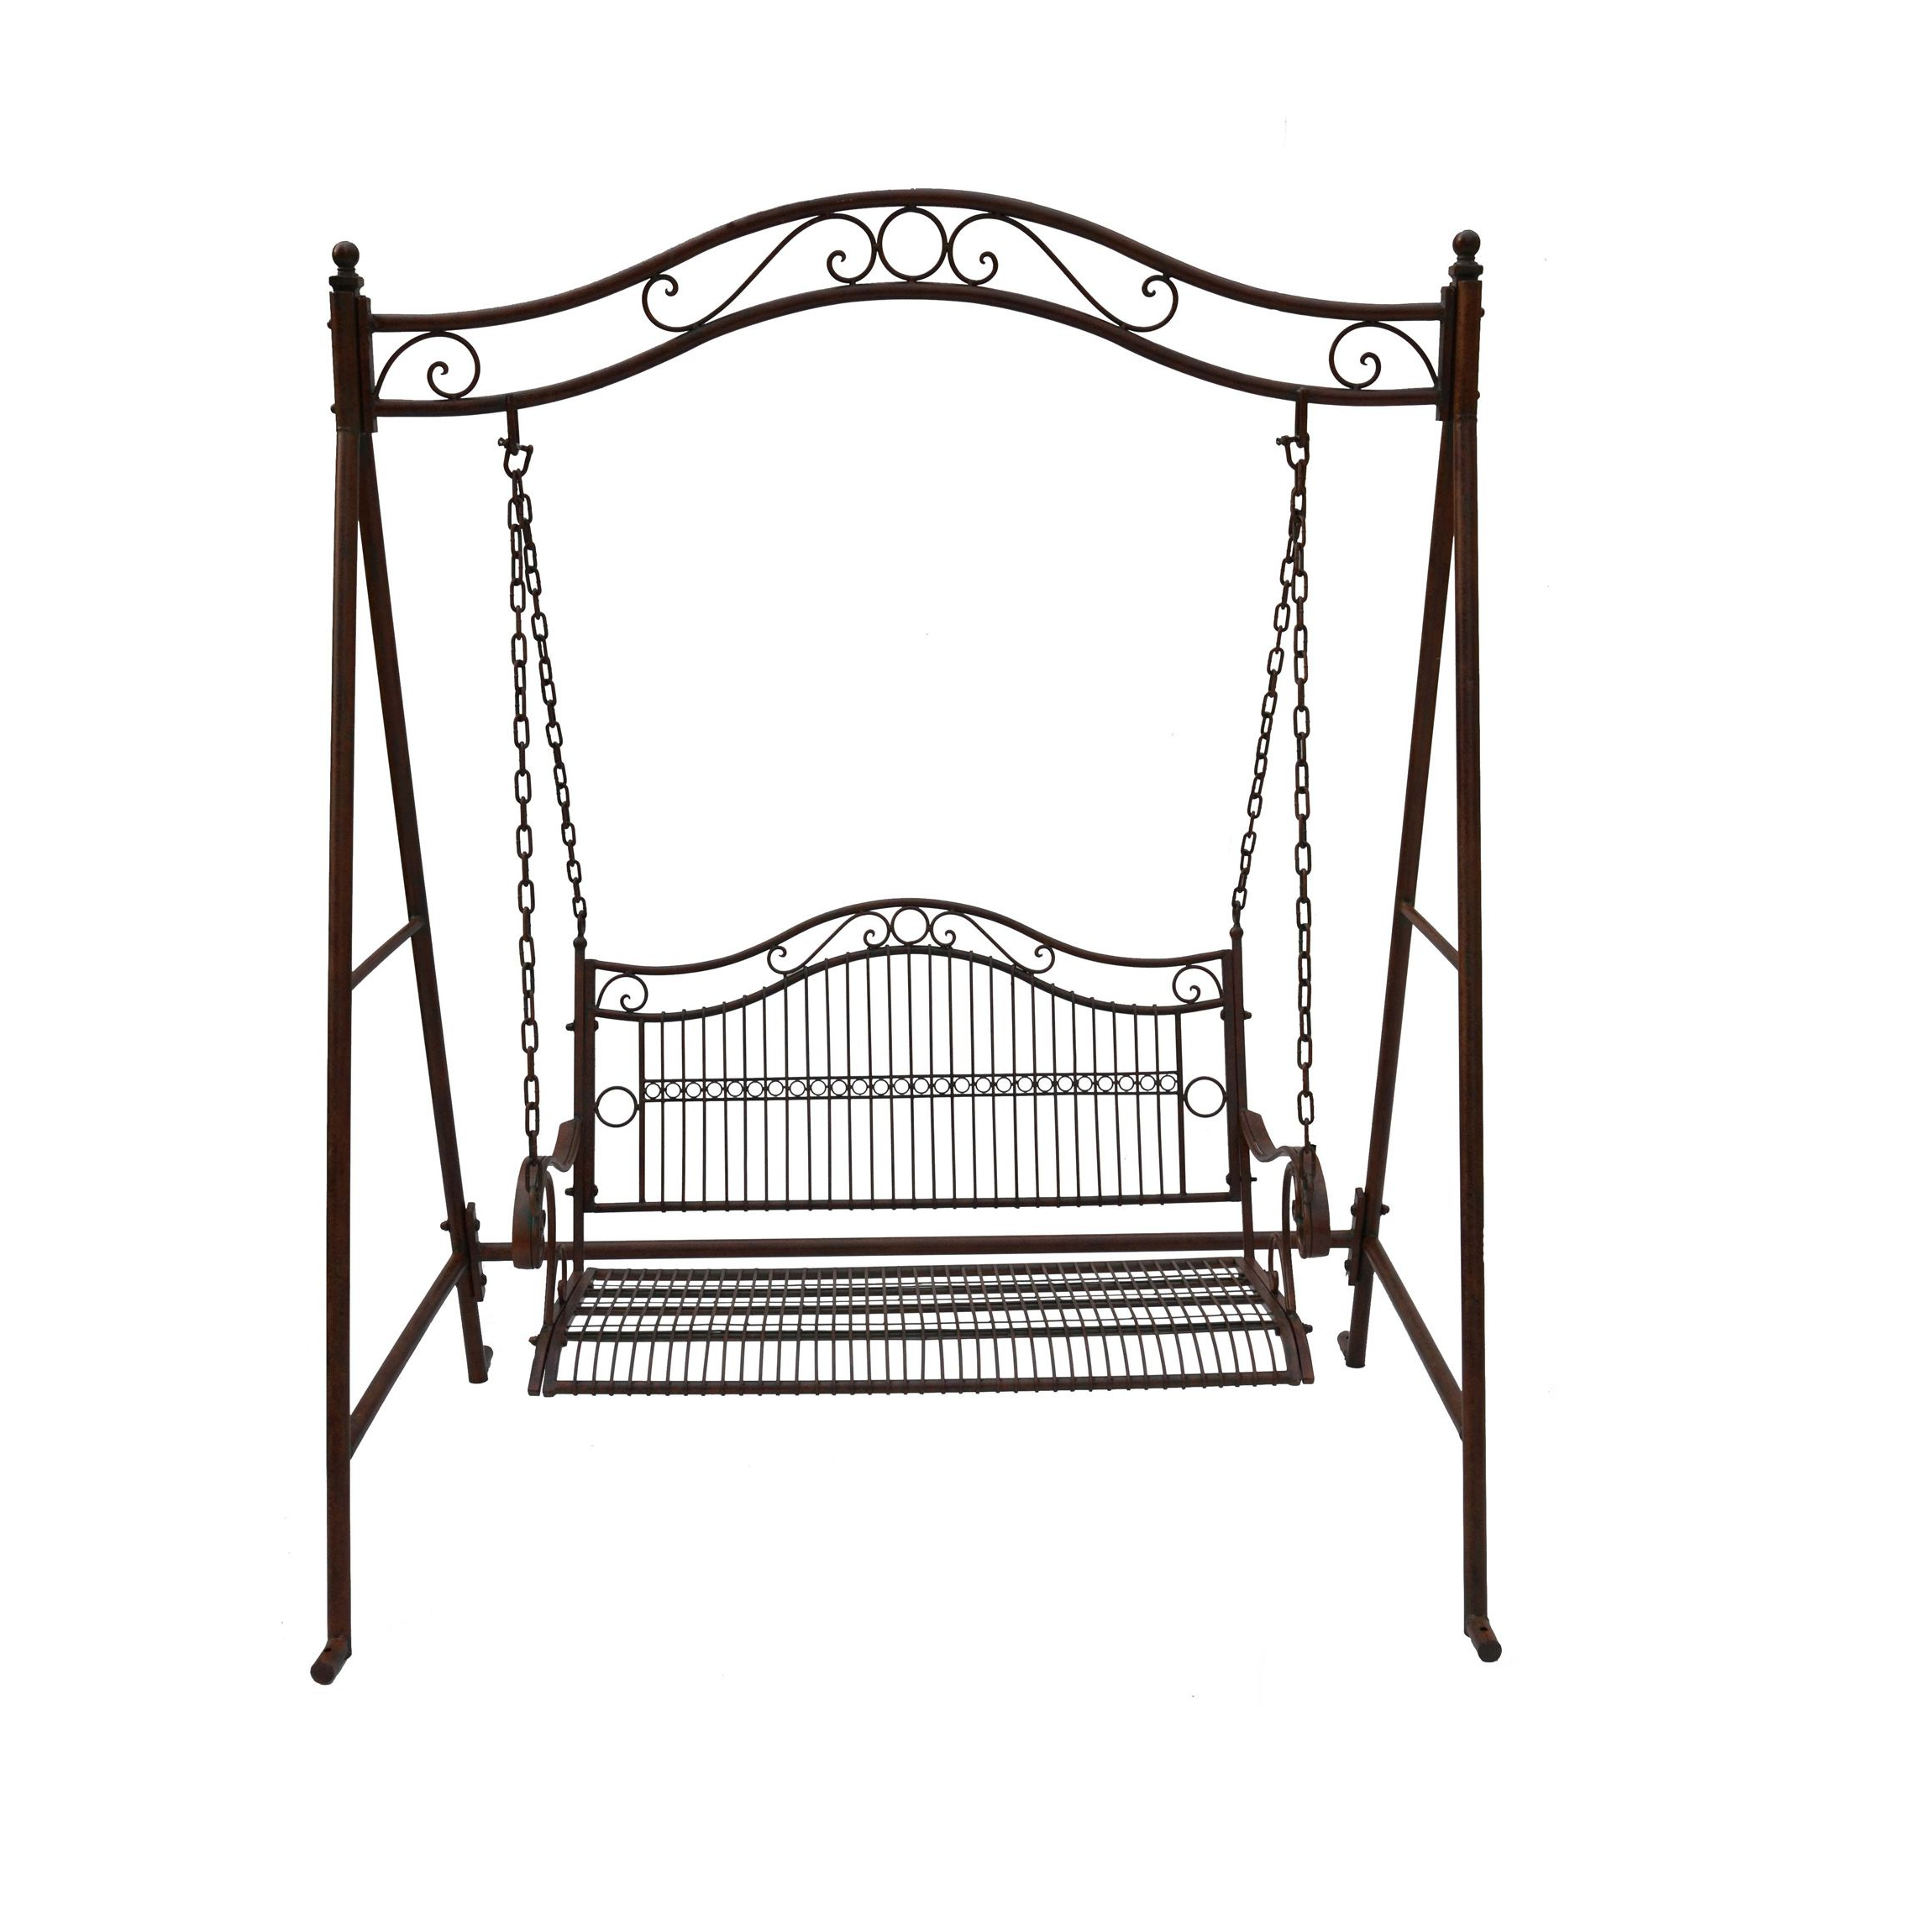 Rustic Irons, Swing Seat Regarding Most Up To Date 2 Person Antique Black Iron Outdoor Swings (View 5 of 25)